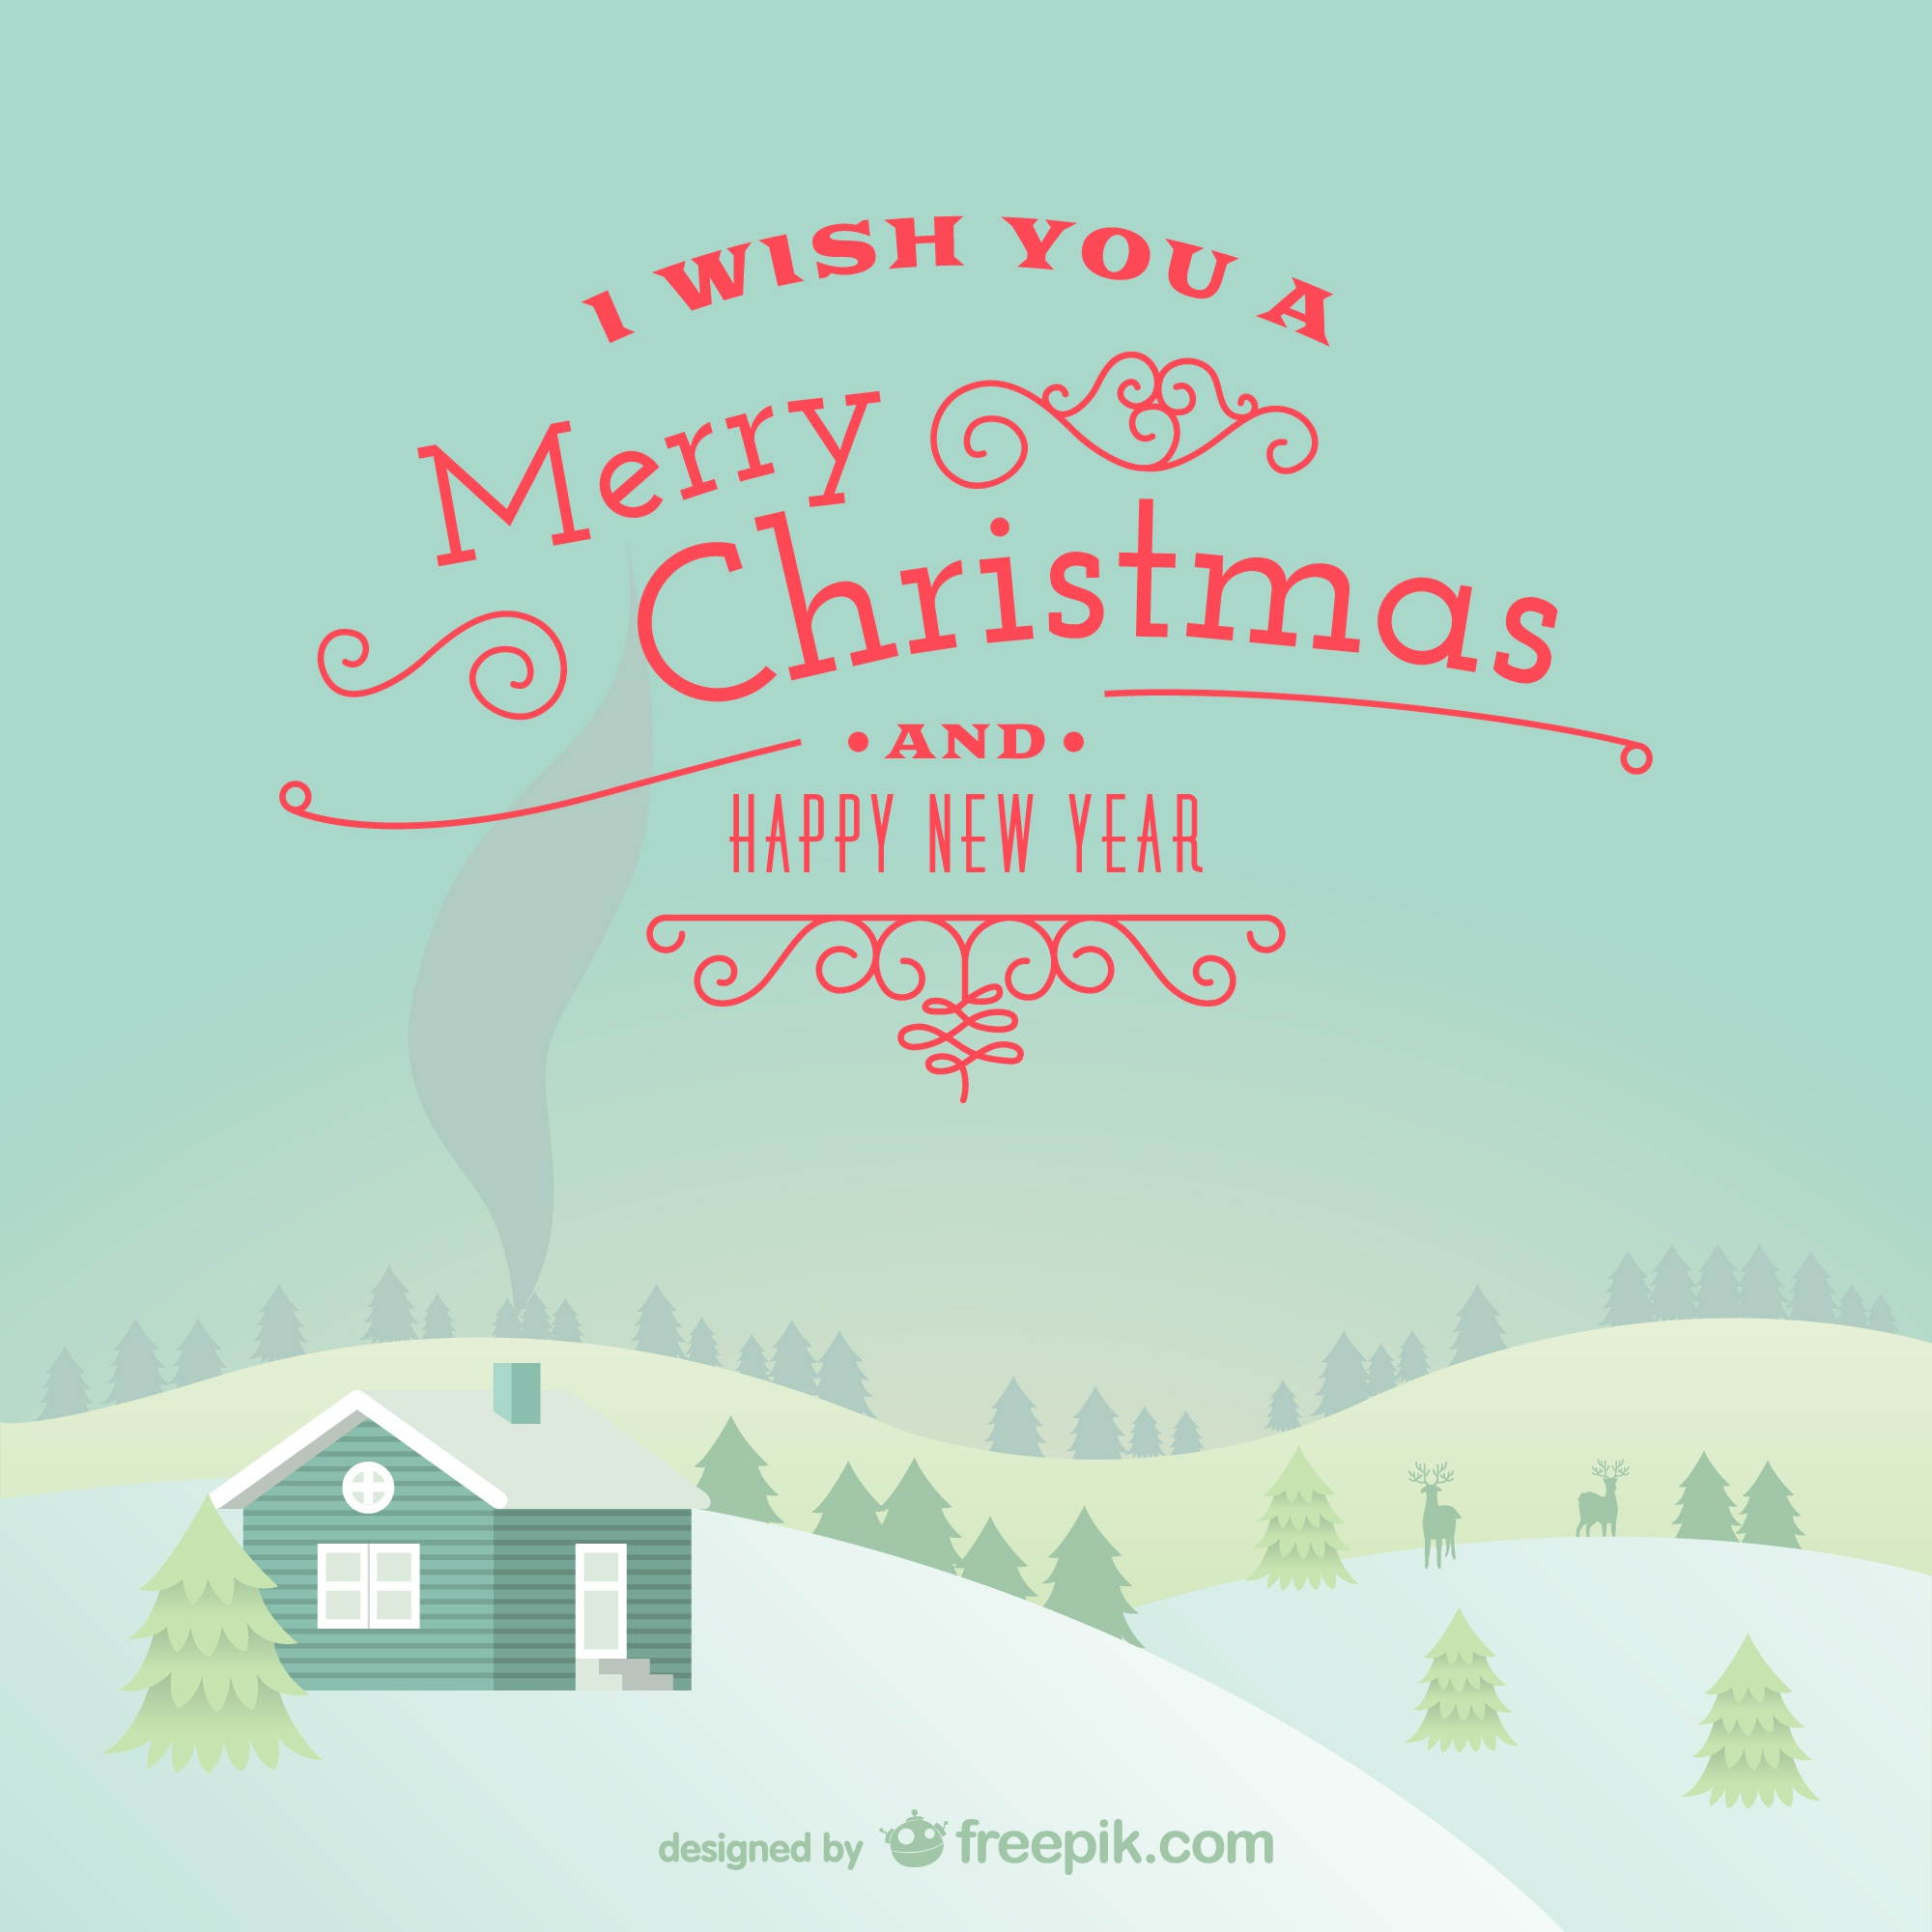 Merry Christmas background with snowy landscape